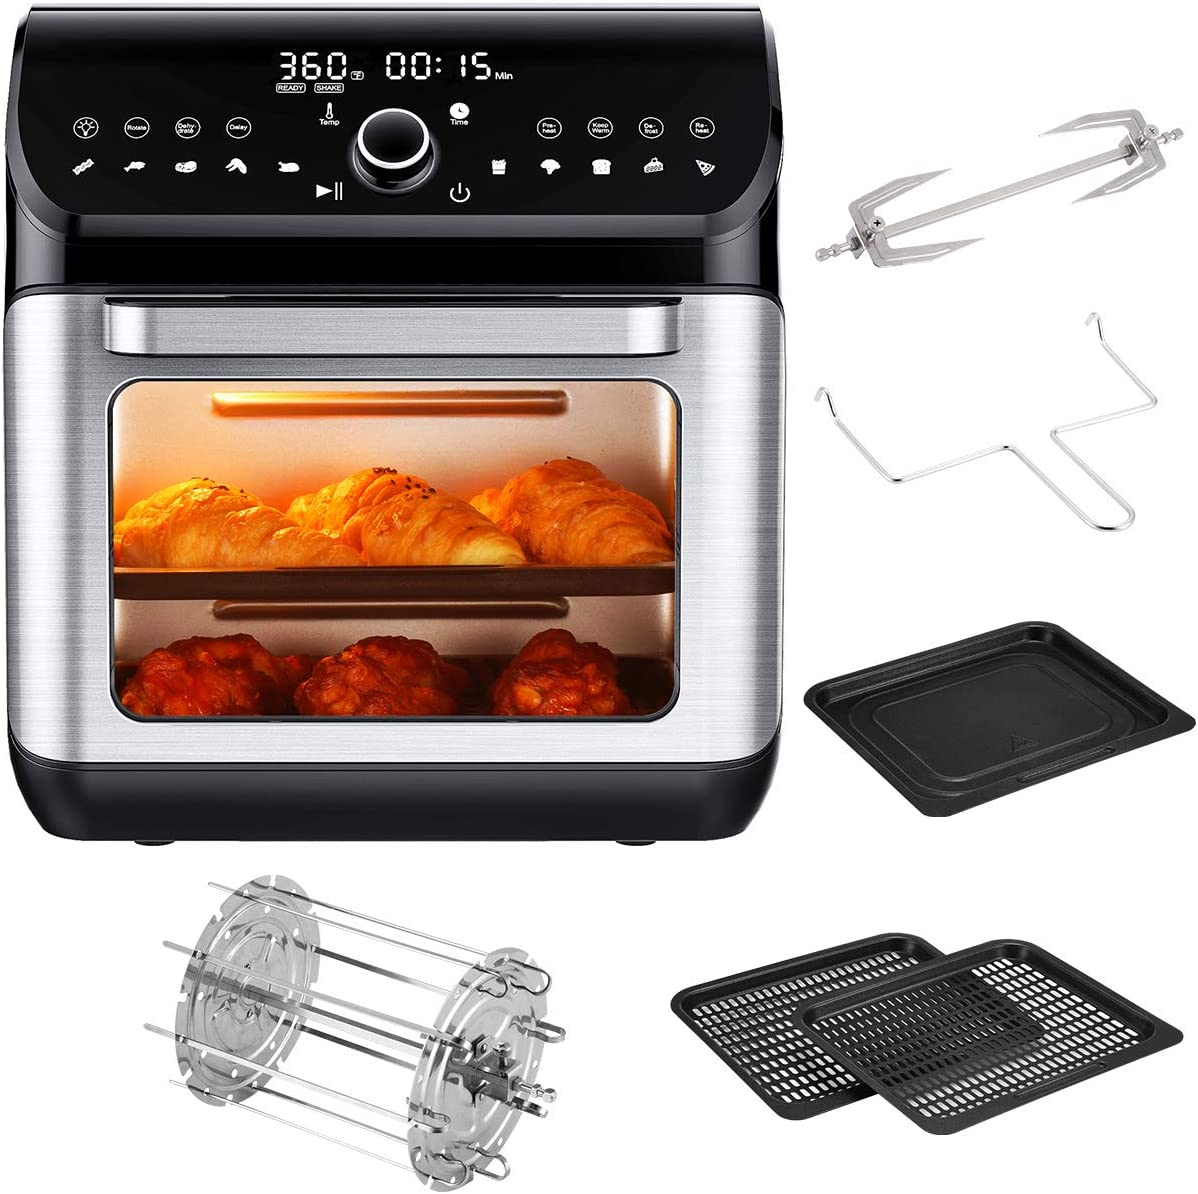 Top 10 Bed Bath Beyond Convection Oven Home Gadgets